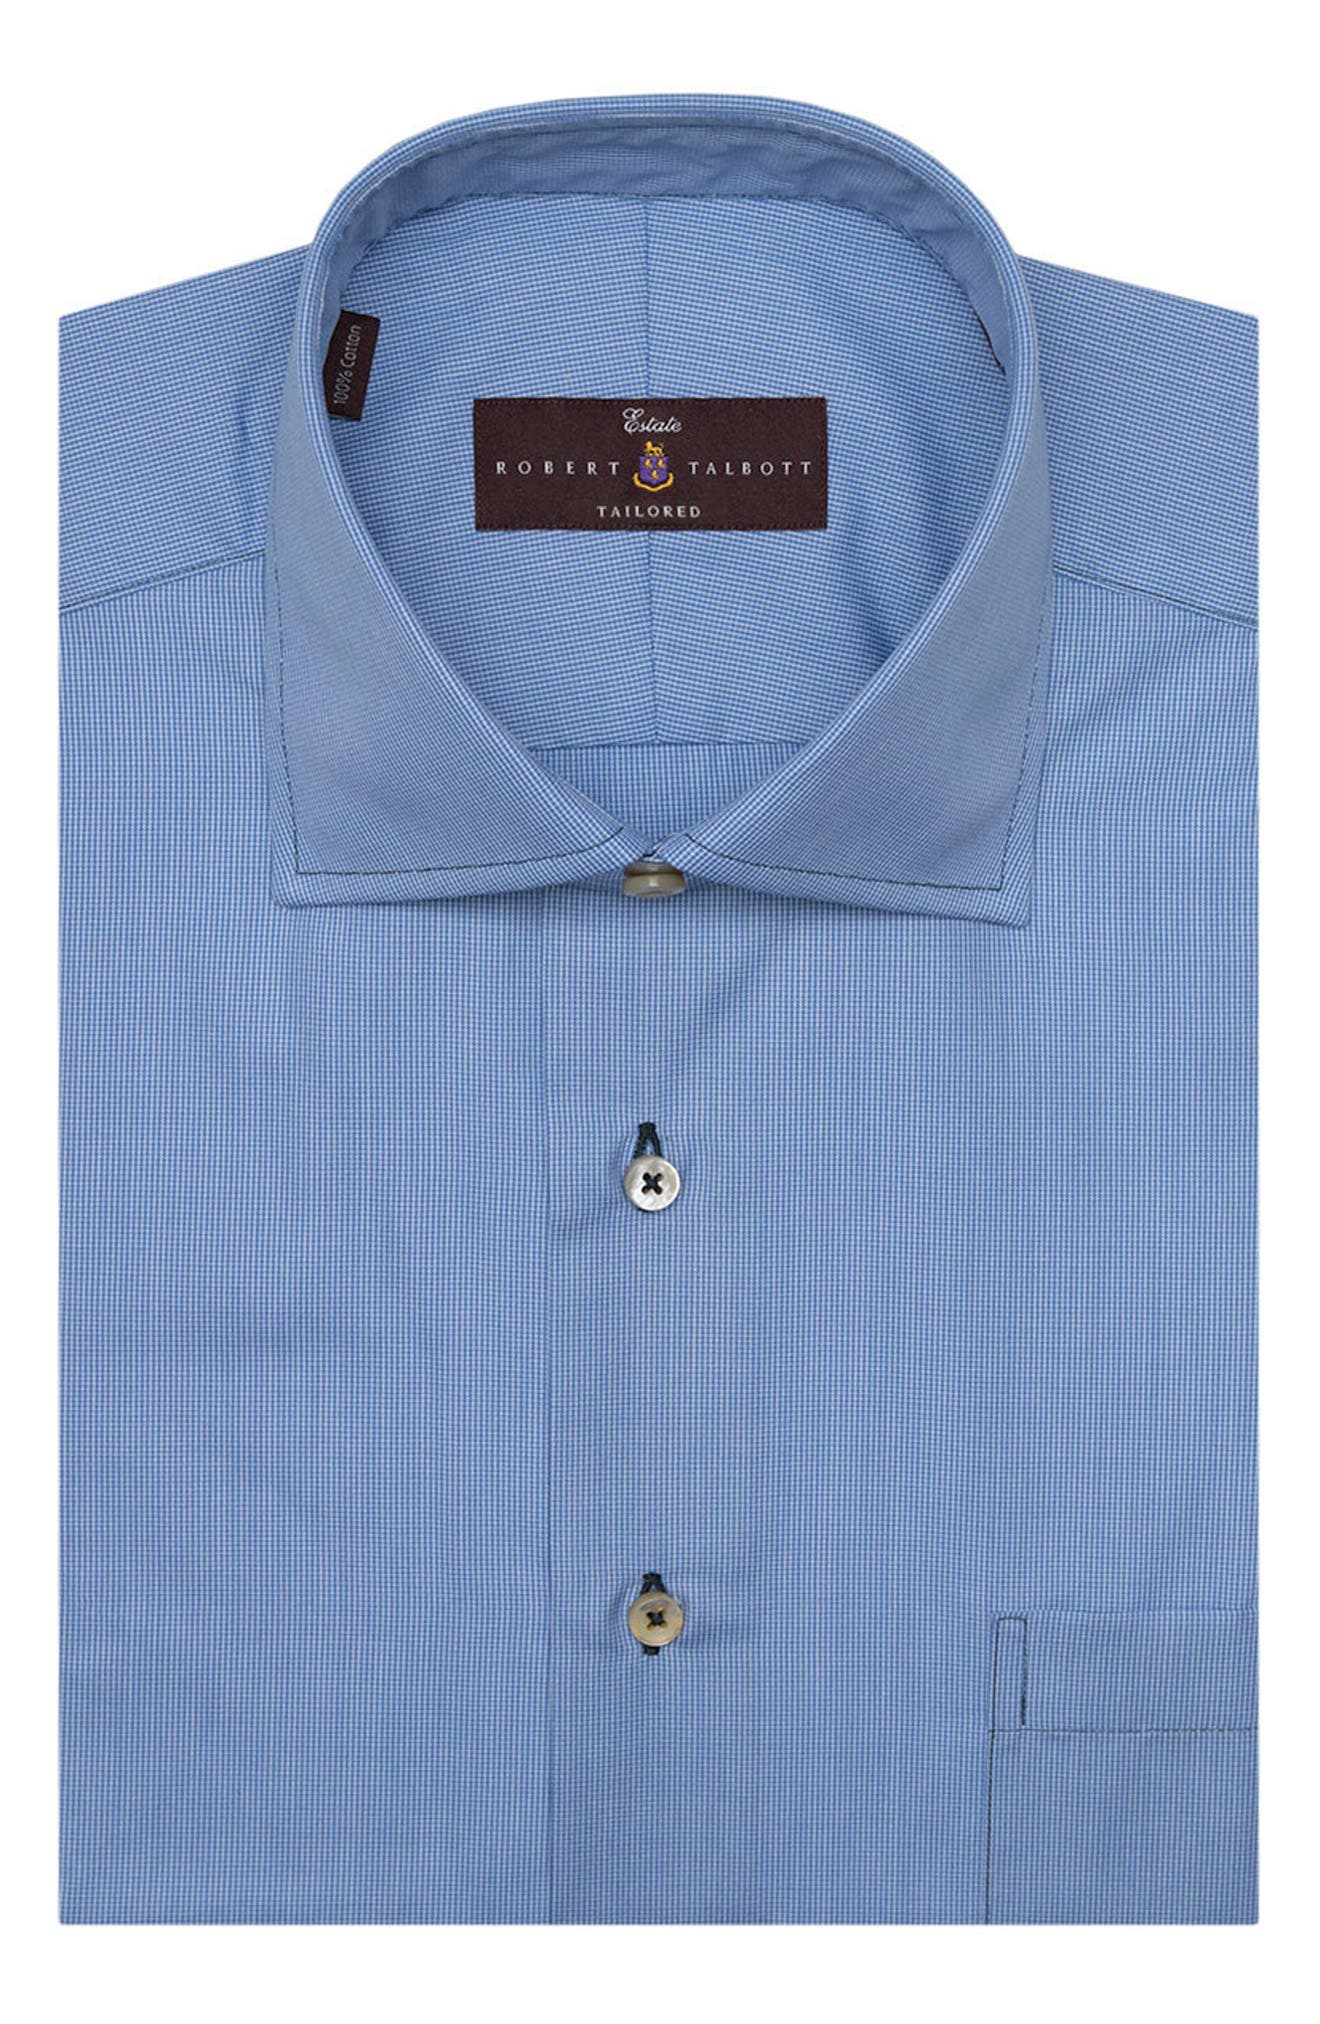 ROBERT TALBOTT TAILORED FIT CHECK DRESS SHIRT